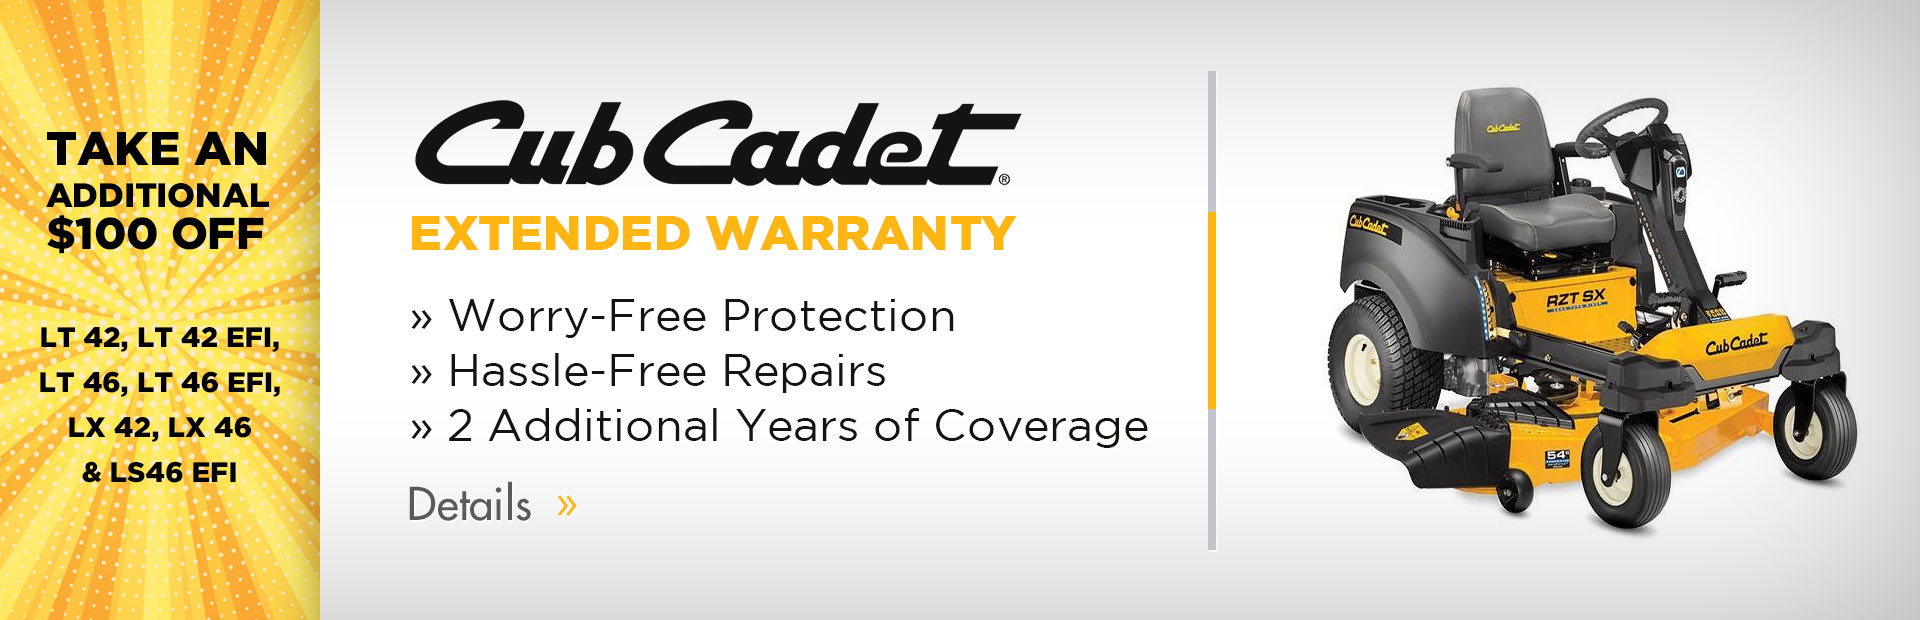 Cub Cadet Extended Warranty: Click here for details.